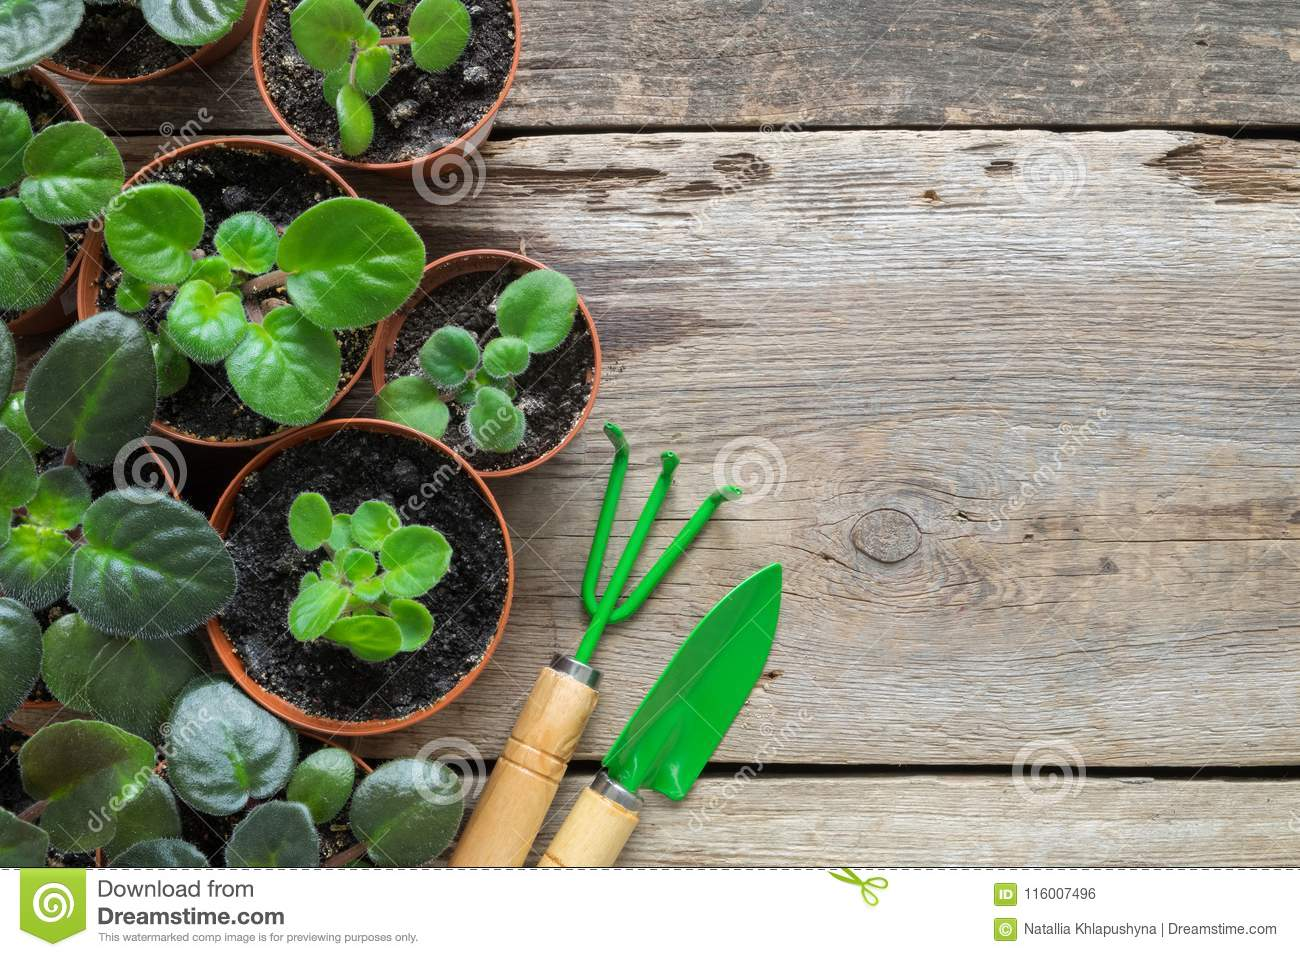 Several flowerpot of home plants. Planting potted flowers and garden tools.